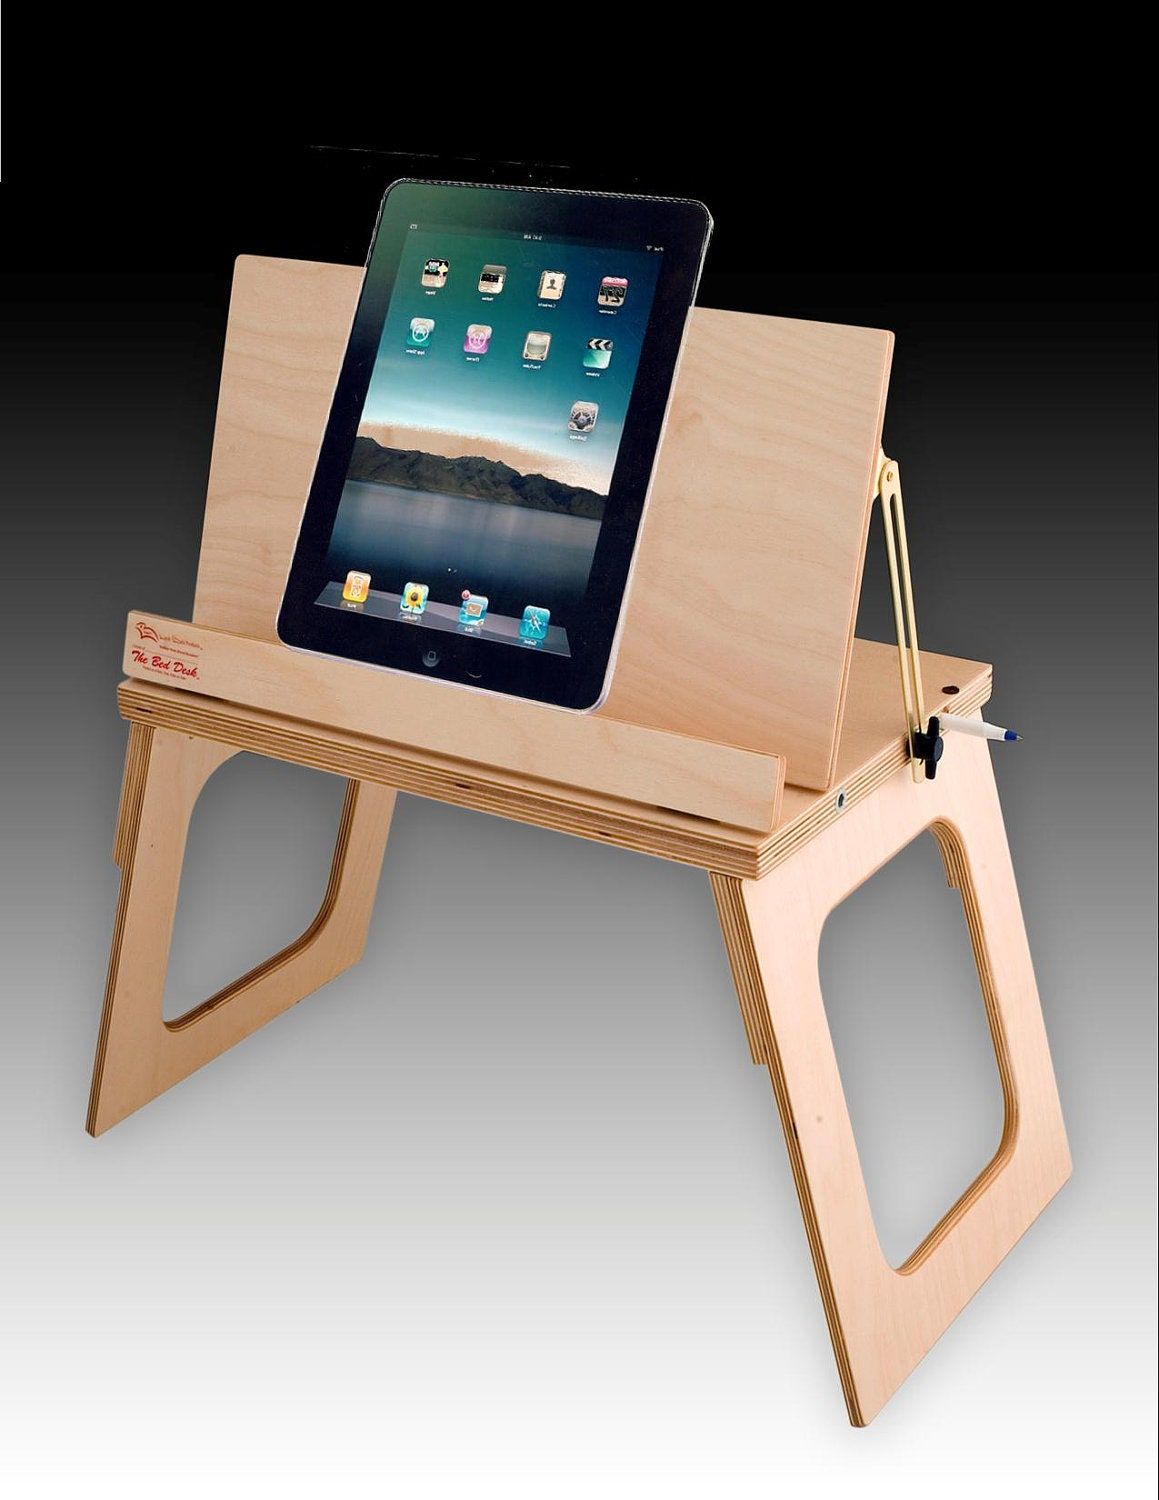 The Ipad Desk Portable Crafting Painting Reading Laptop Book